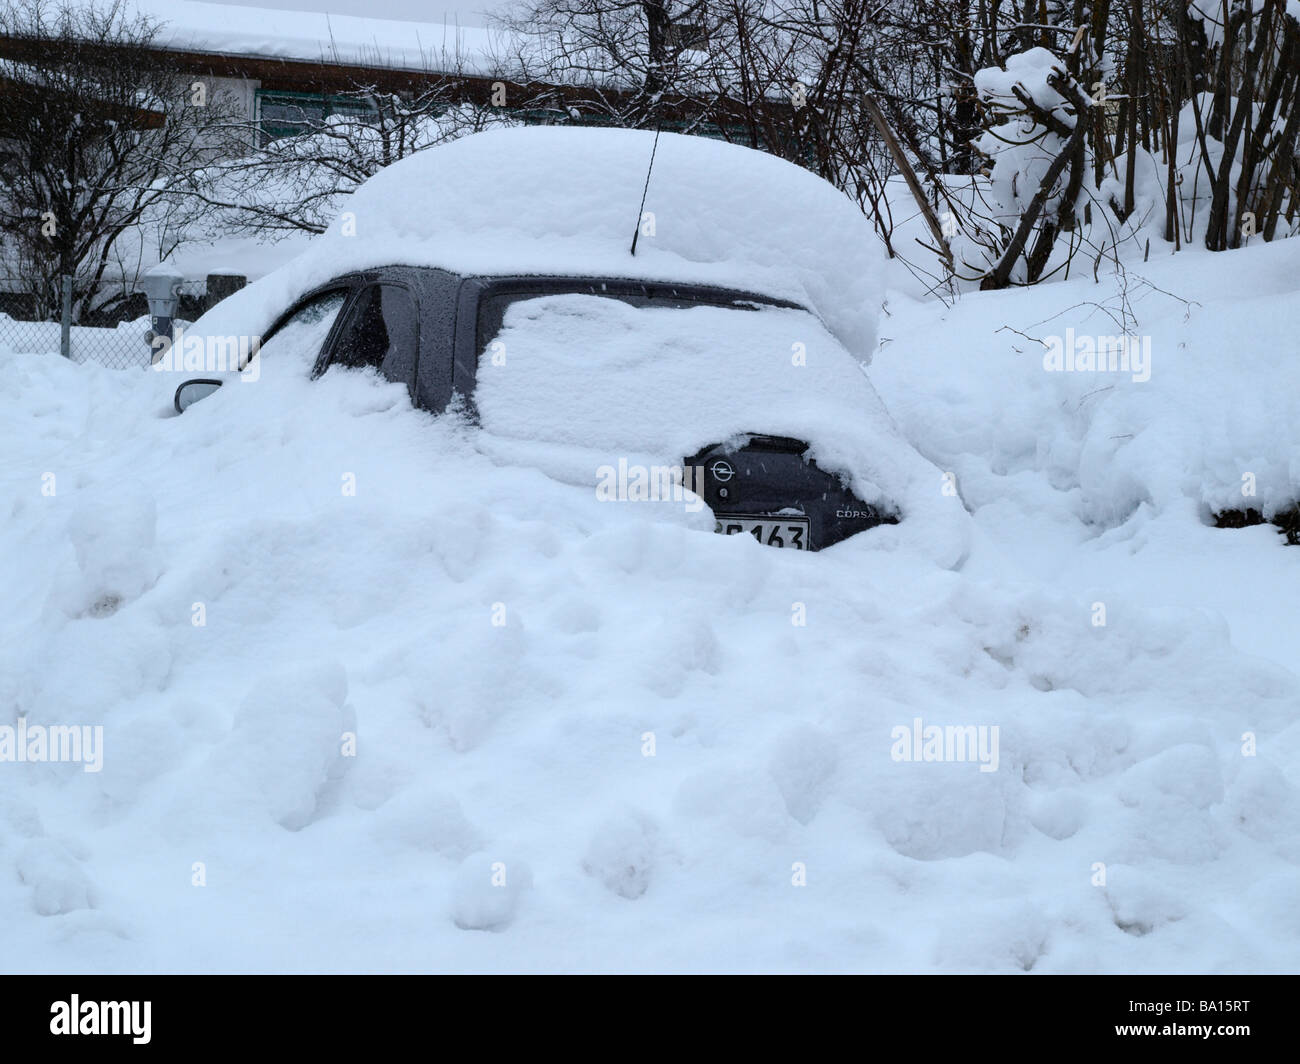 Car drowned in snowdrift - Stock Image